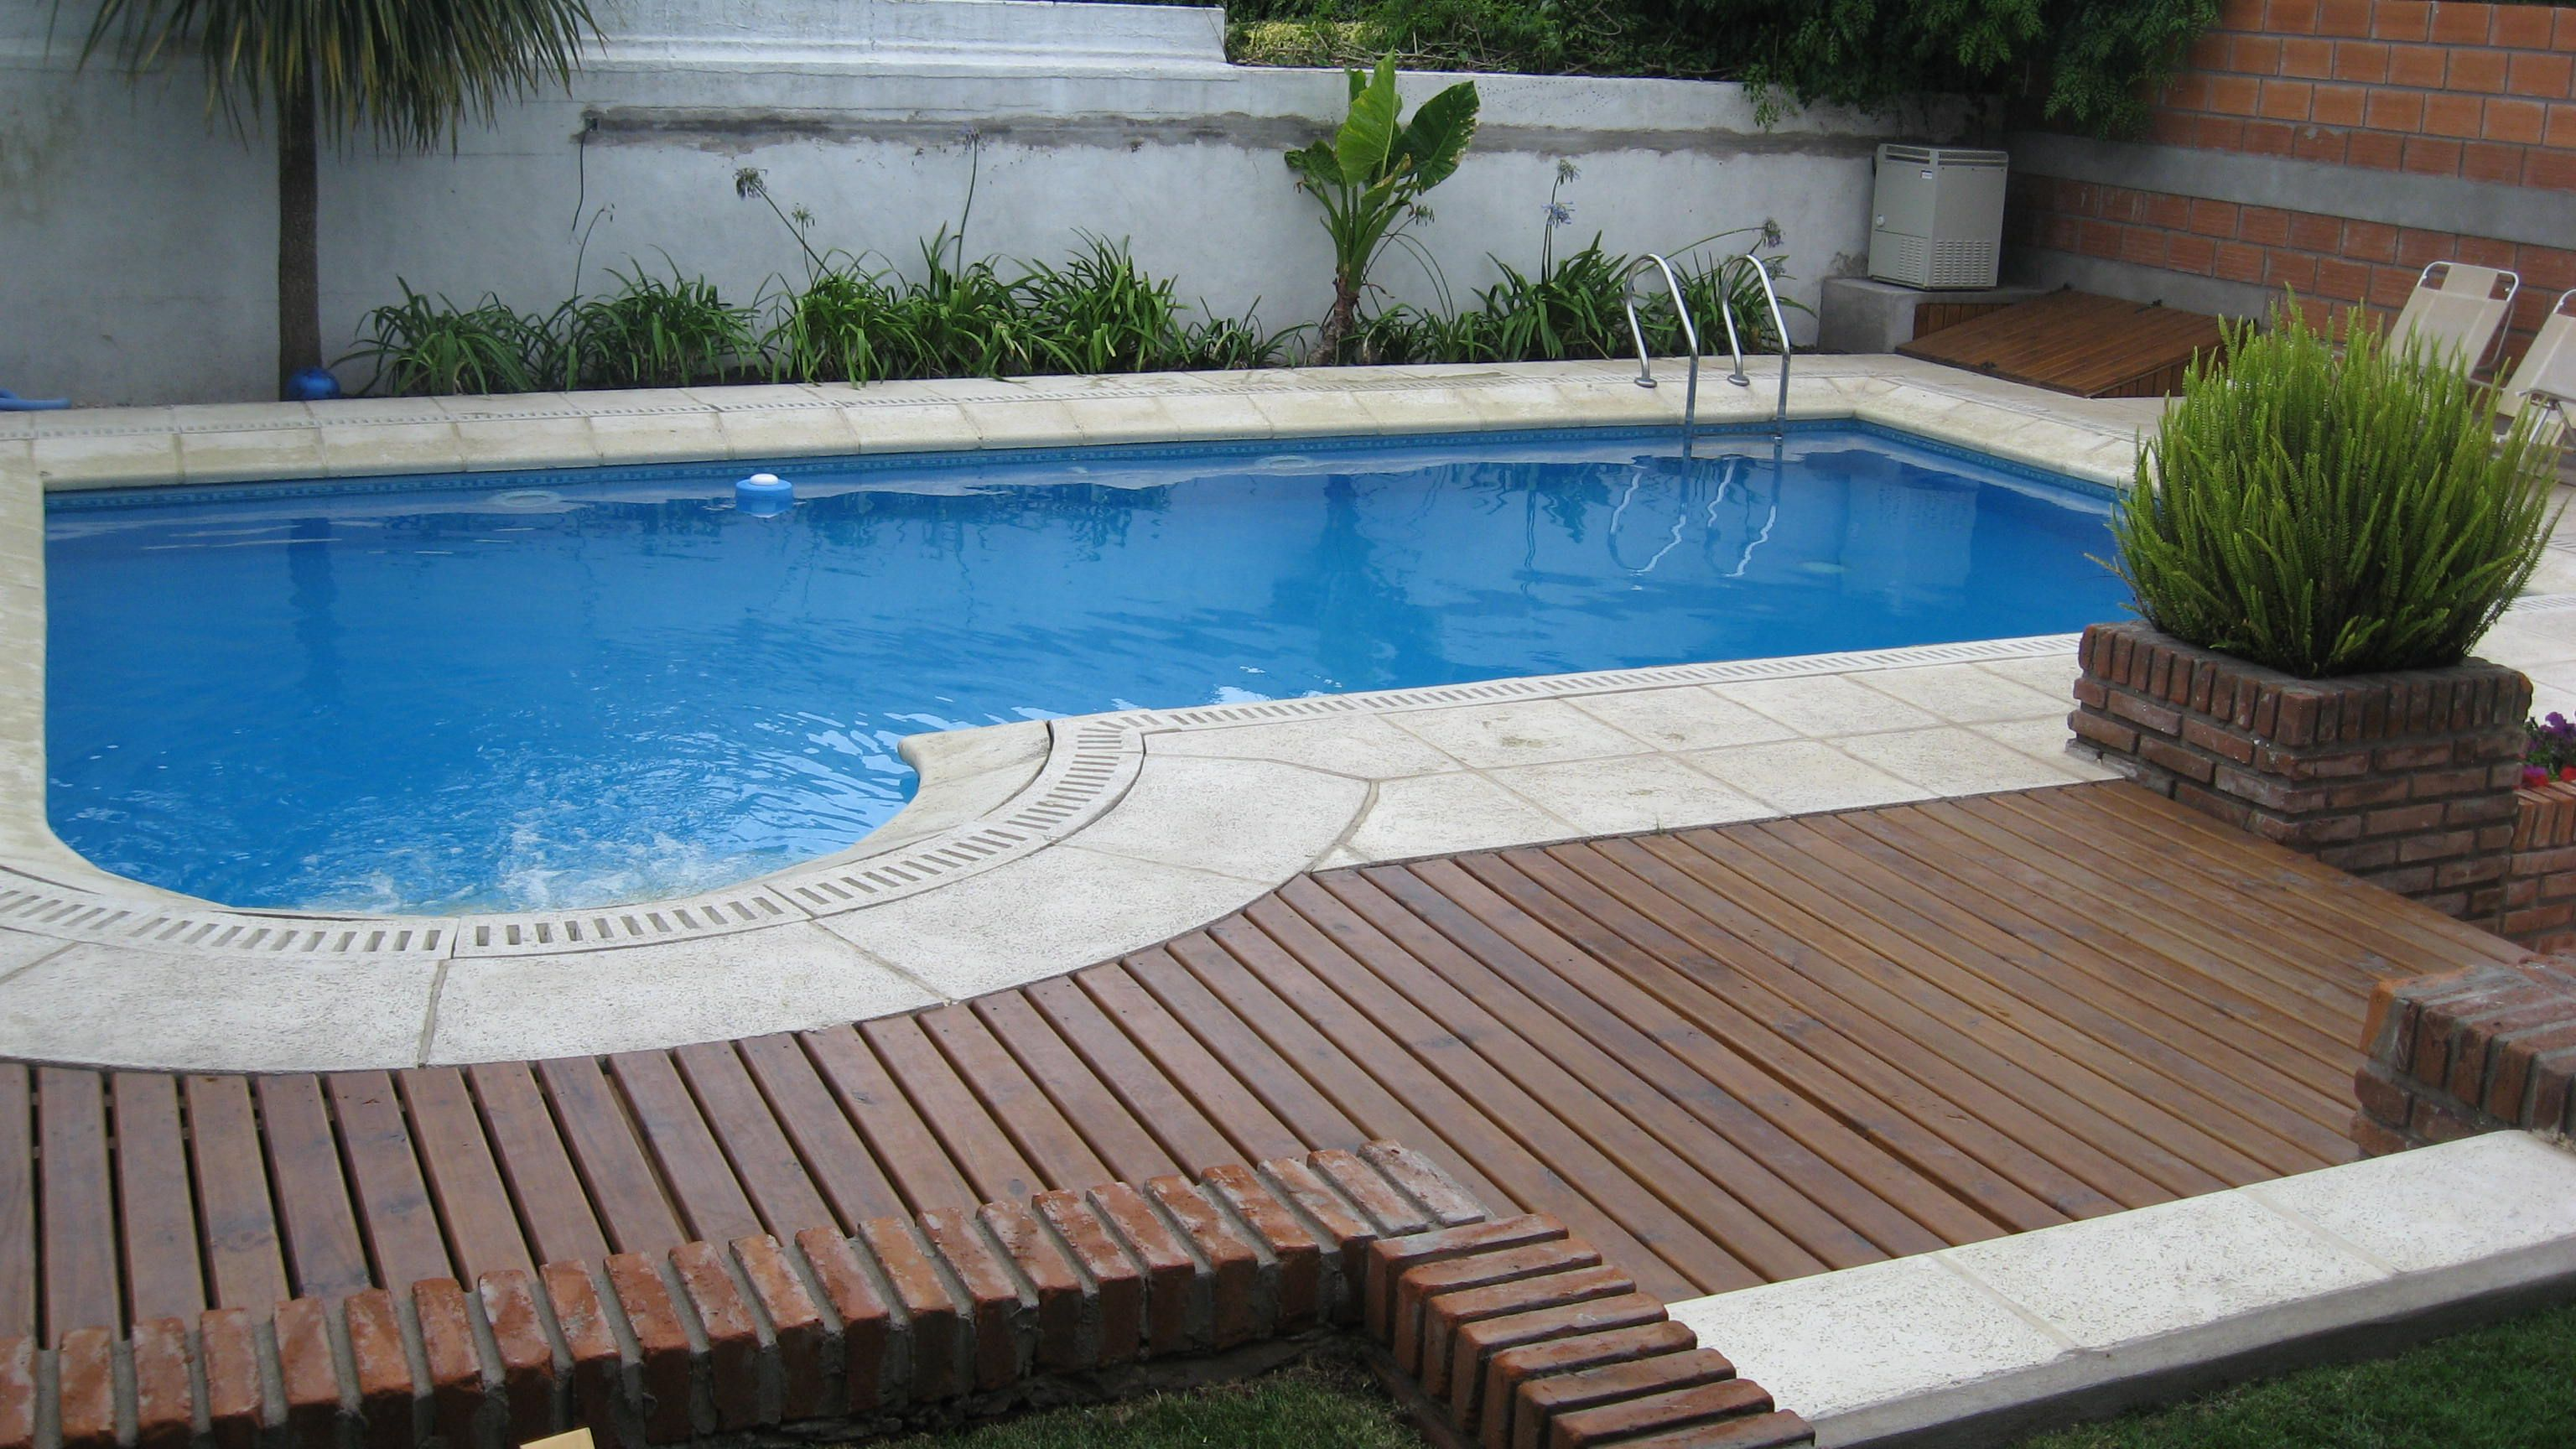 deck de madera y piscina | Piscinas | Pinterest | Piscinas y Madera